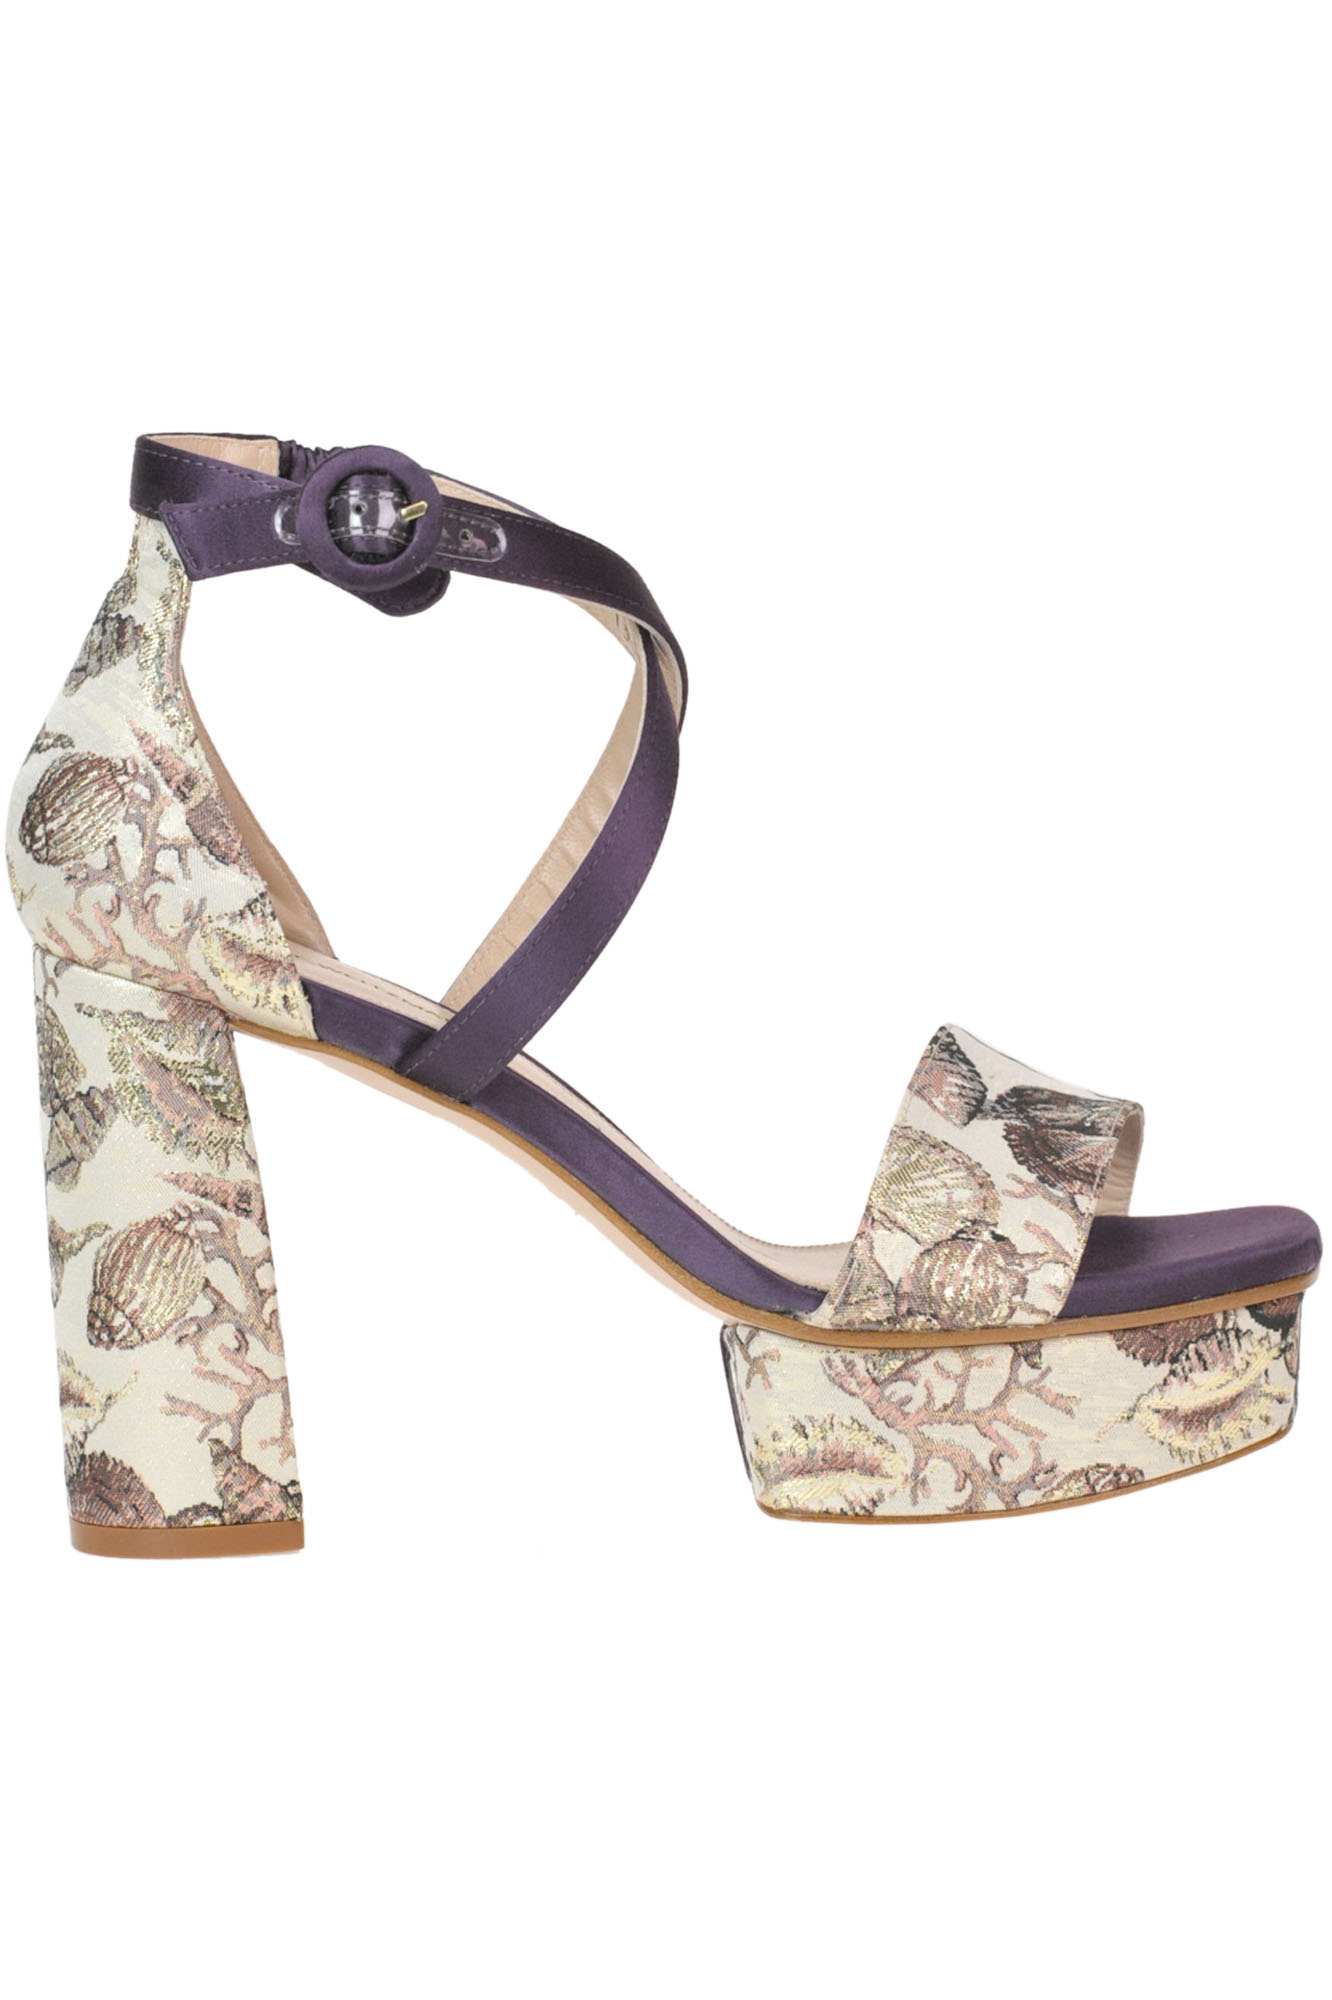 Stuart Weitzman 'Carla' Sandals In Multicoloured